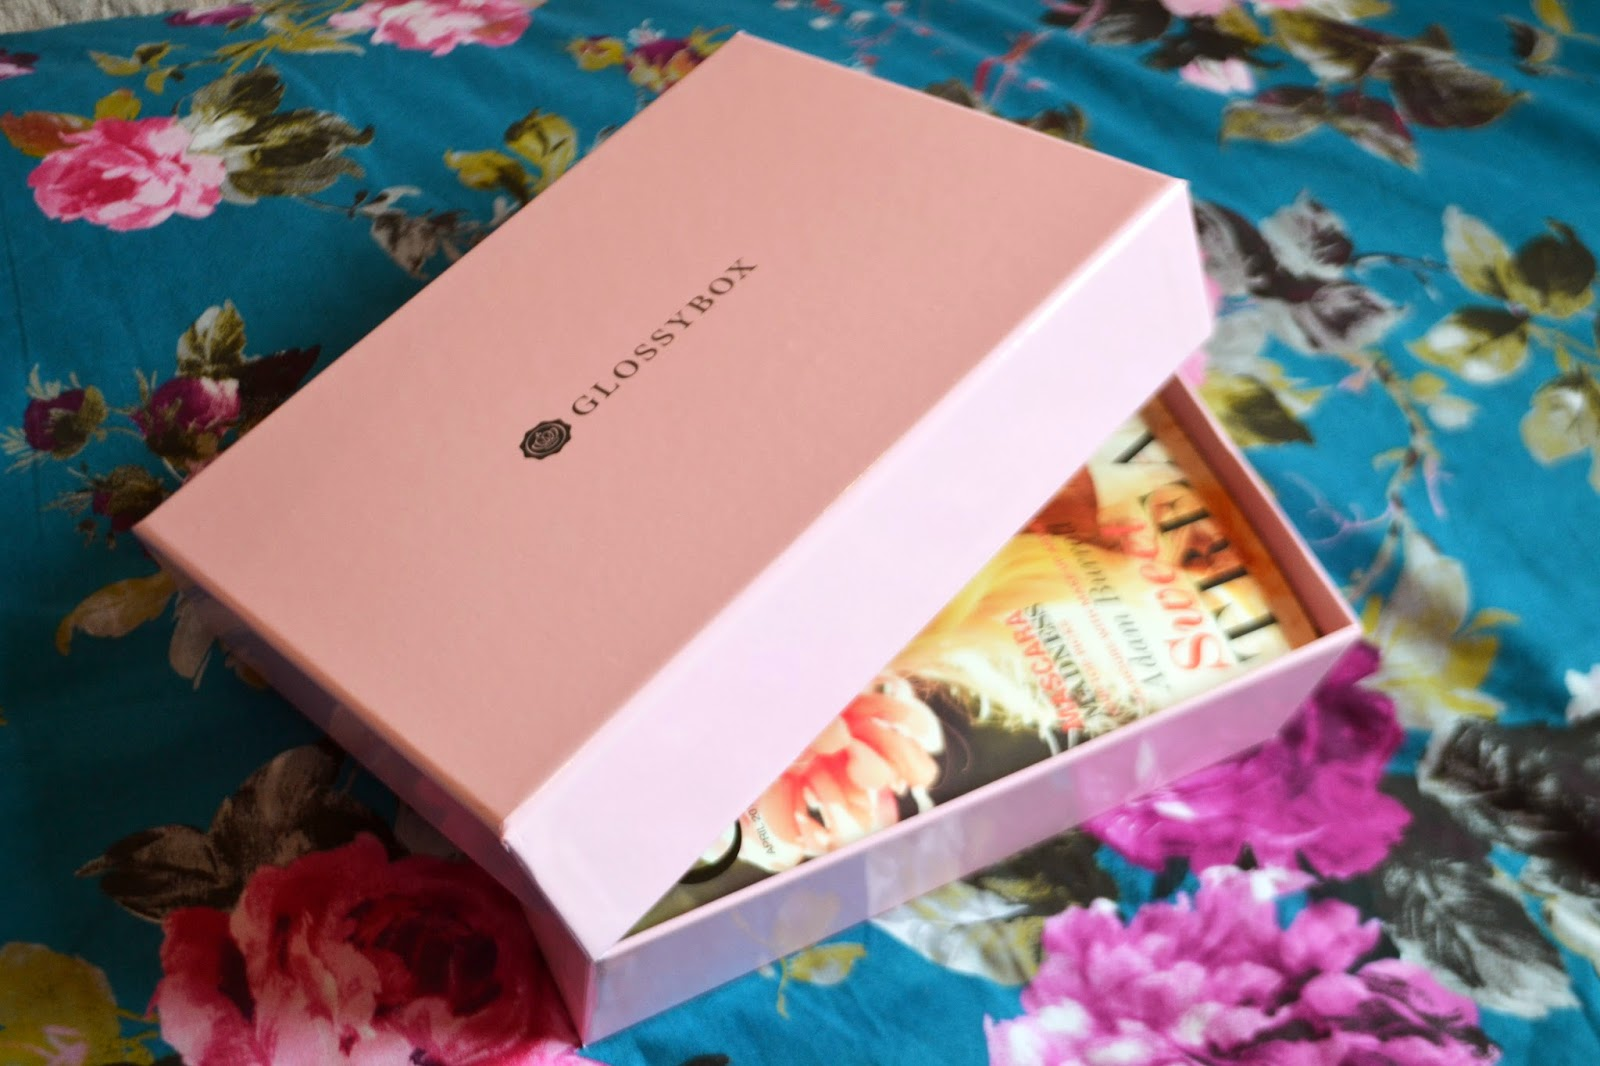 The outside of the pink glossybox